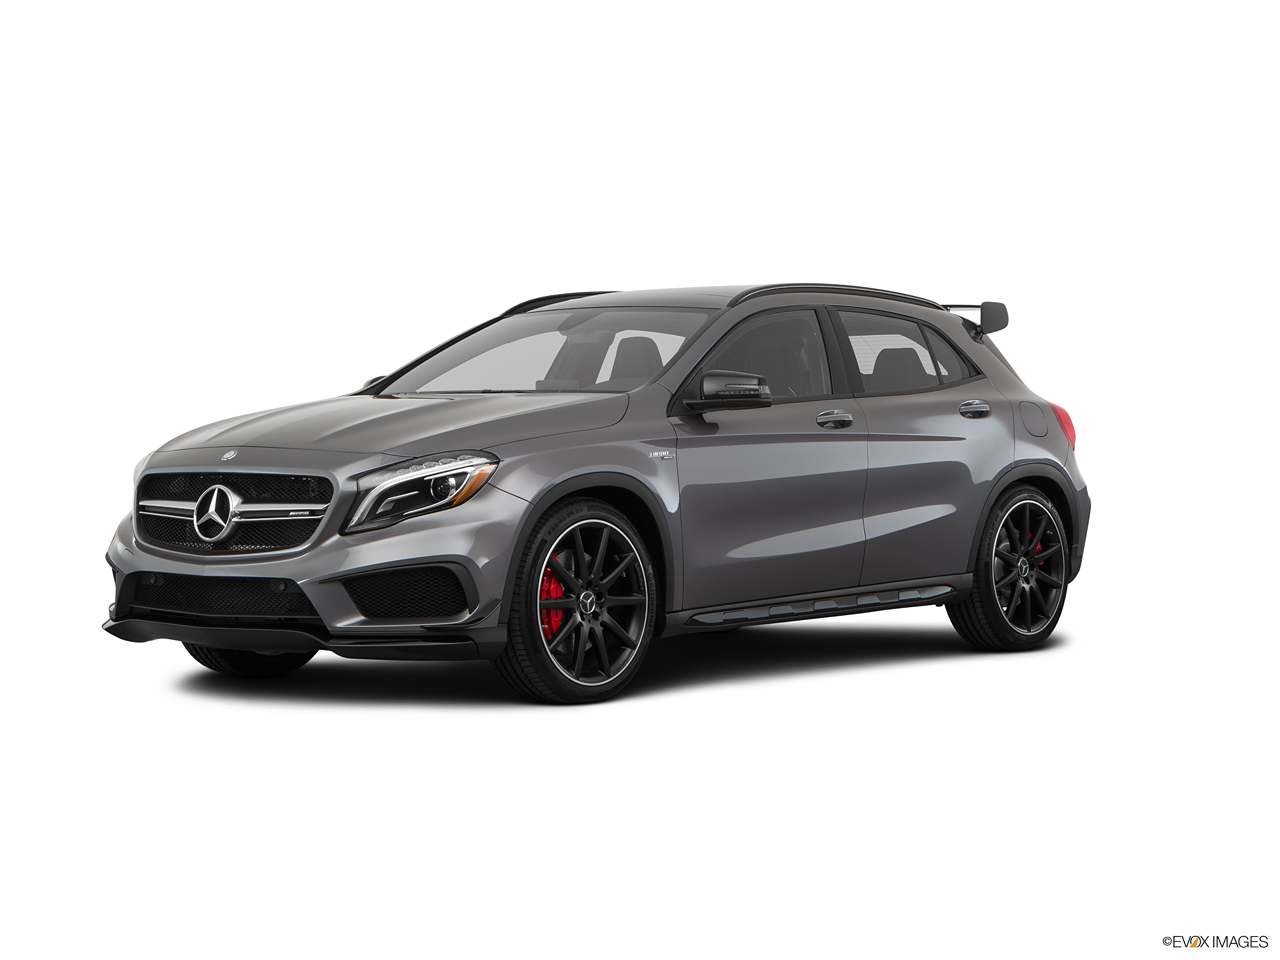 car features list for mercedes benz gla 2016 45 amg bahrain yallamotor. Black Bedroom Furniture Sets. Home Design Ideas